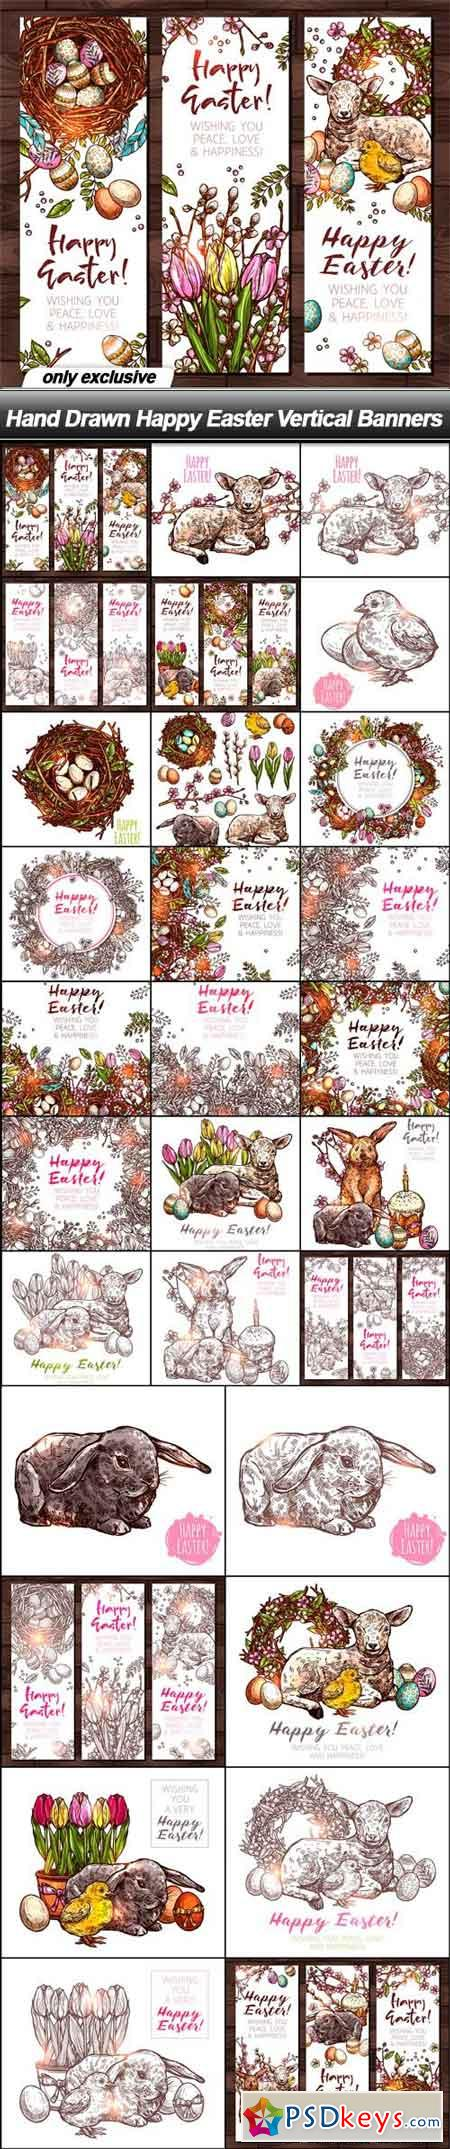 Hand Drawn Happy Easter Vertical Banners - 29 EPS